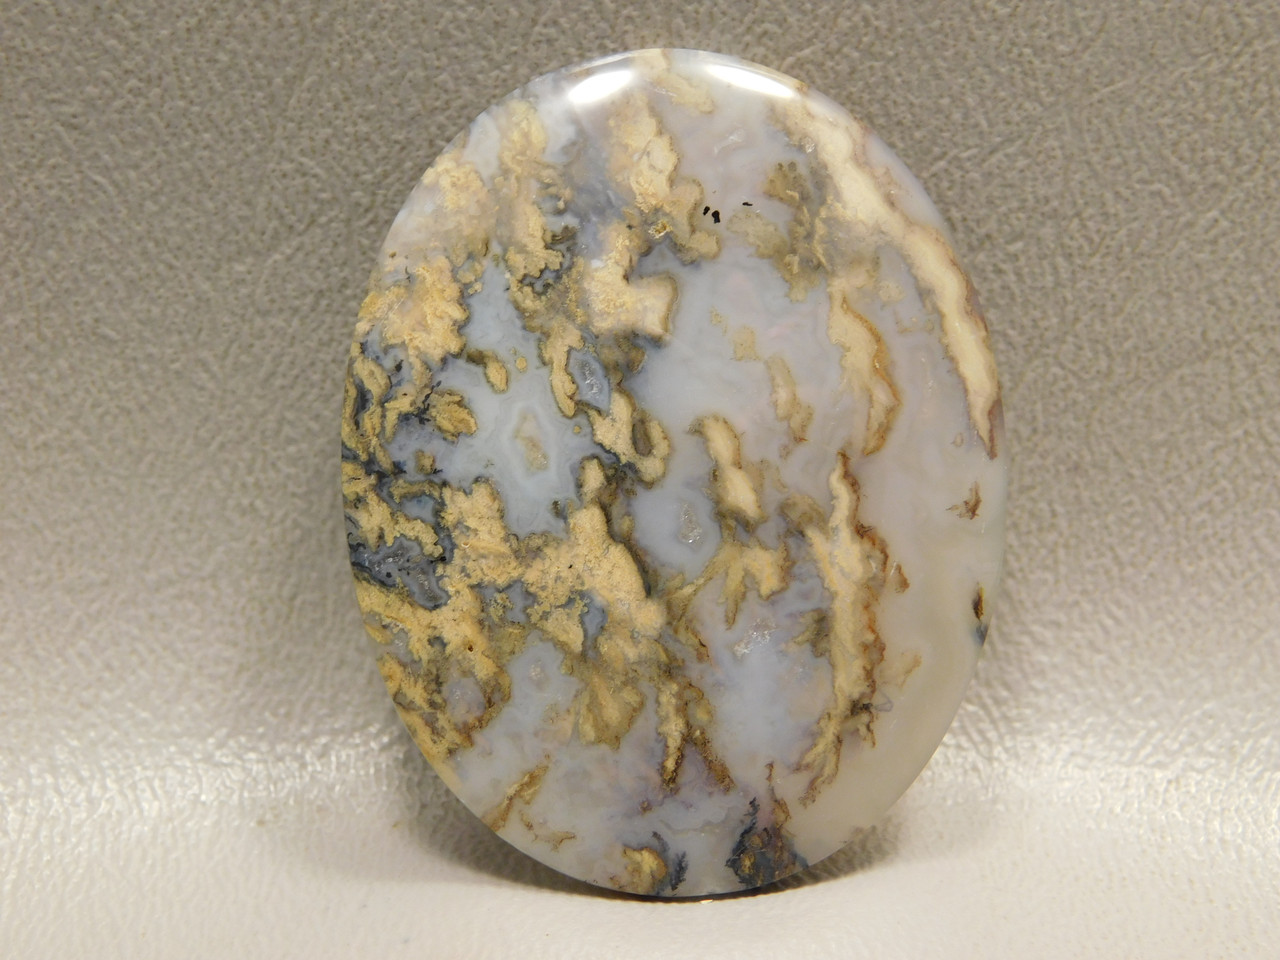 Graveyard Plume Agate Cabochon Jewelry Making Supplies #5